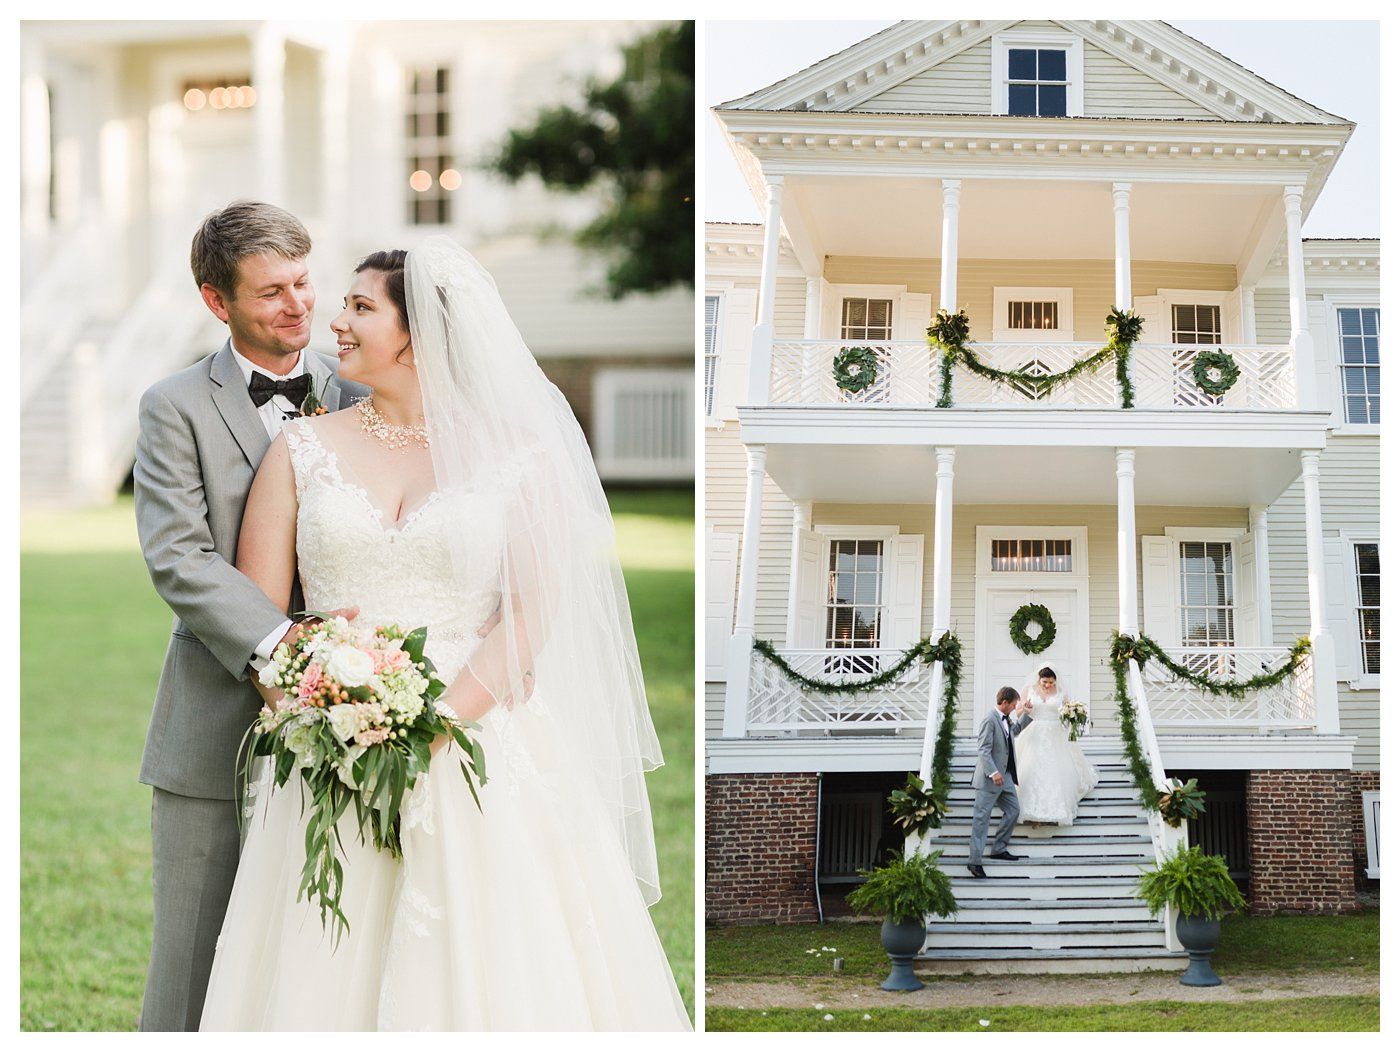 Historic_Hope_Plantation_Wedding_Photography_Sage_Summer_Outdoor_Windsor_NC_0041.jpg